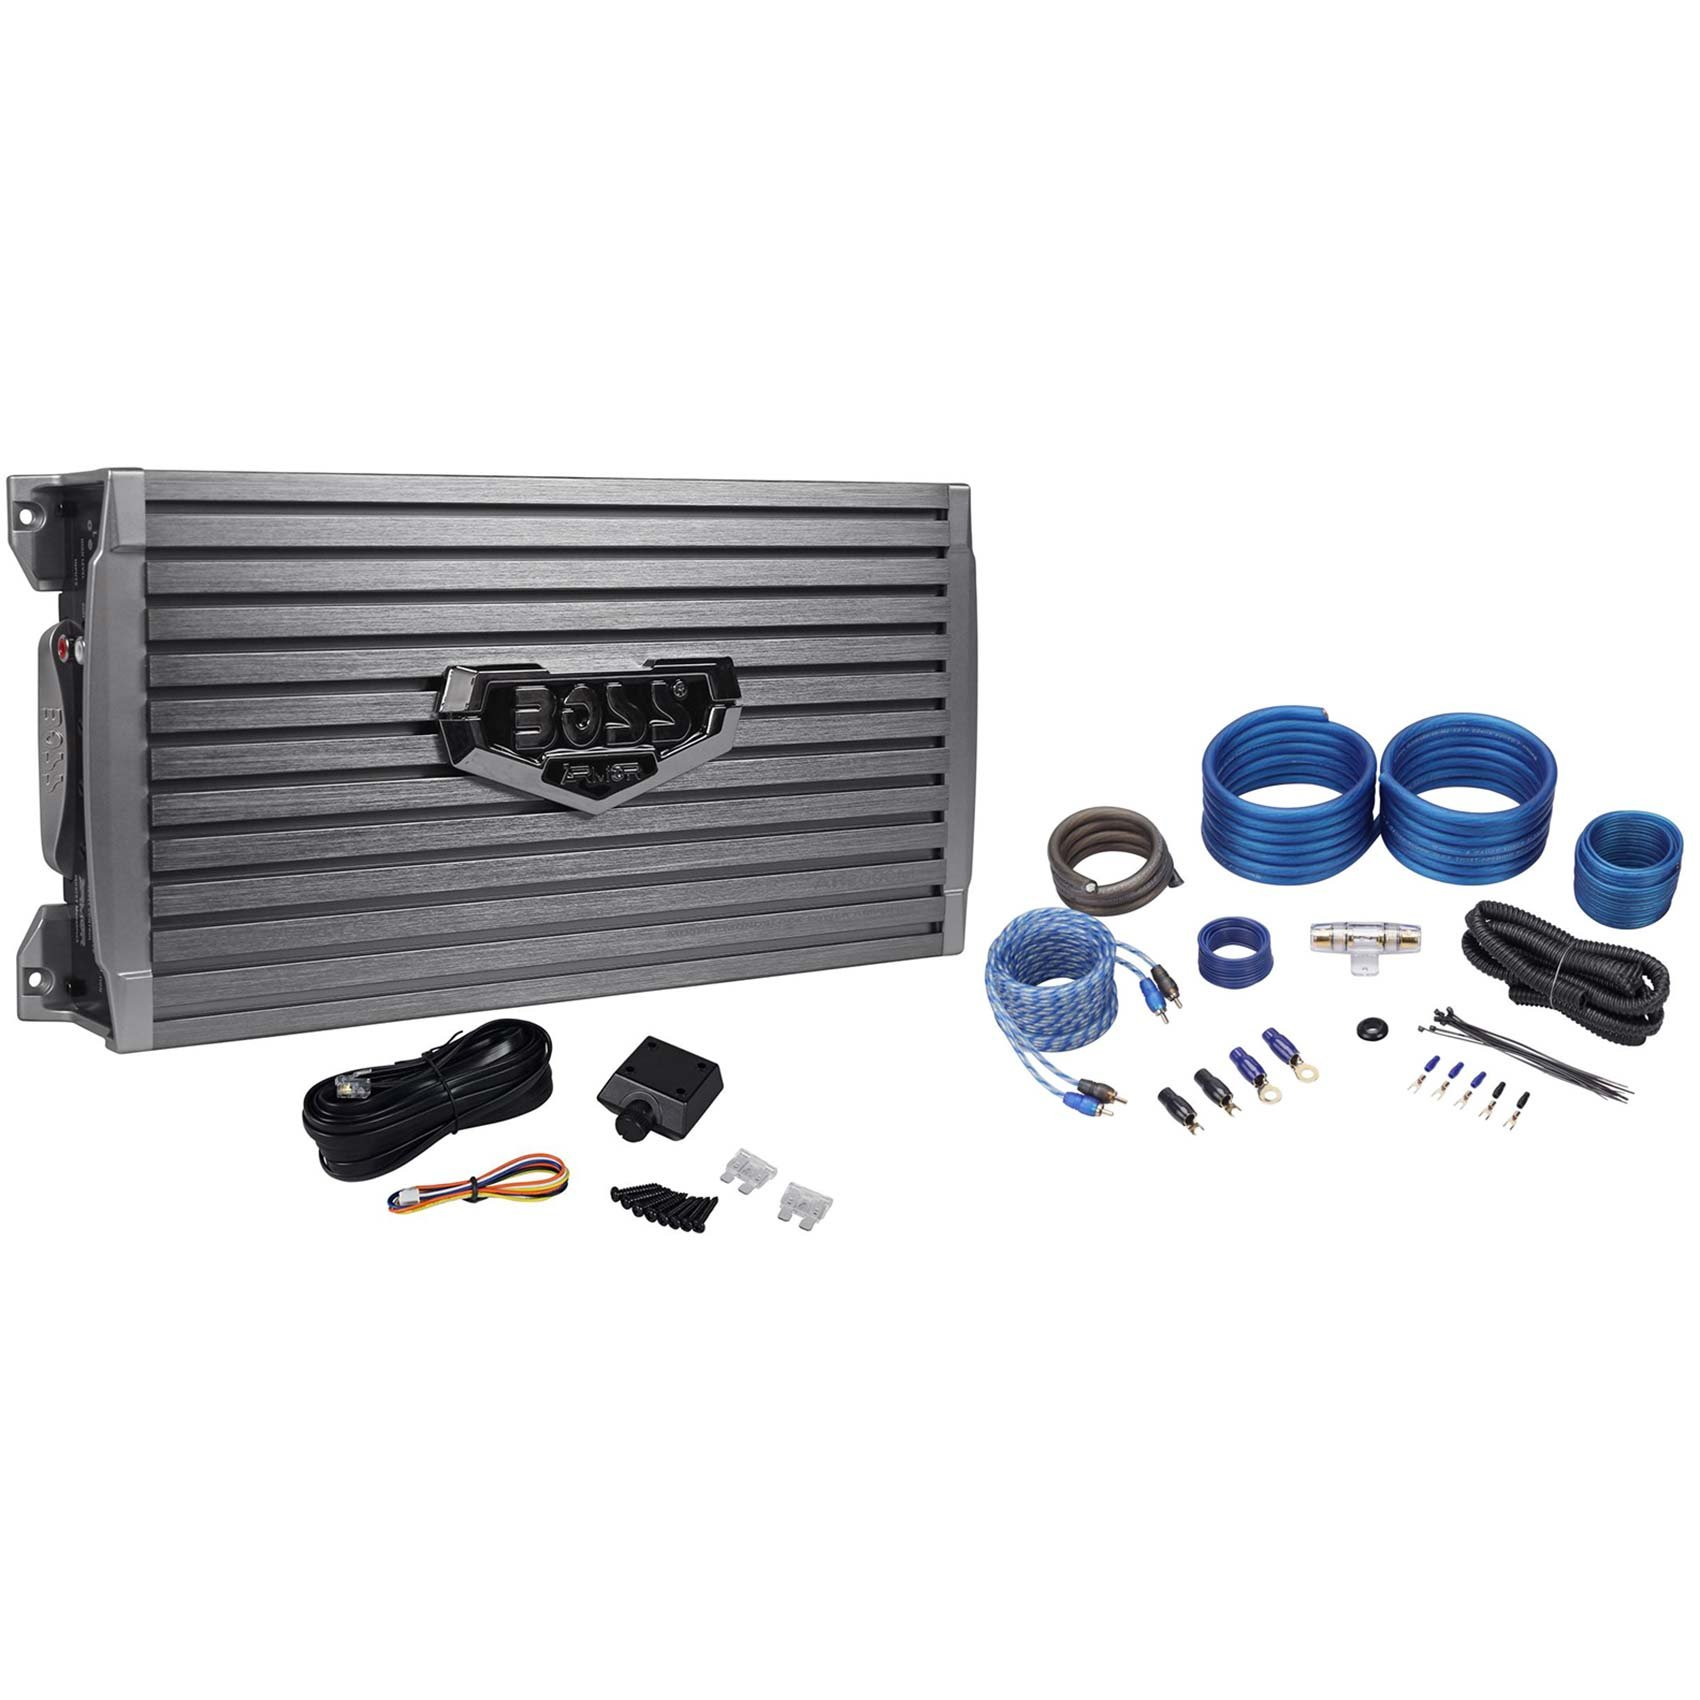 NEW Boss Audio AR2000M 2000W MONO A/B Car Amplifier + 4 Gauge Amp Install Kit